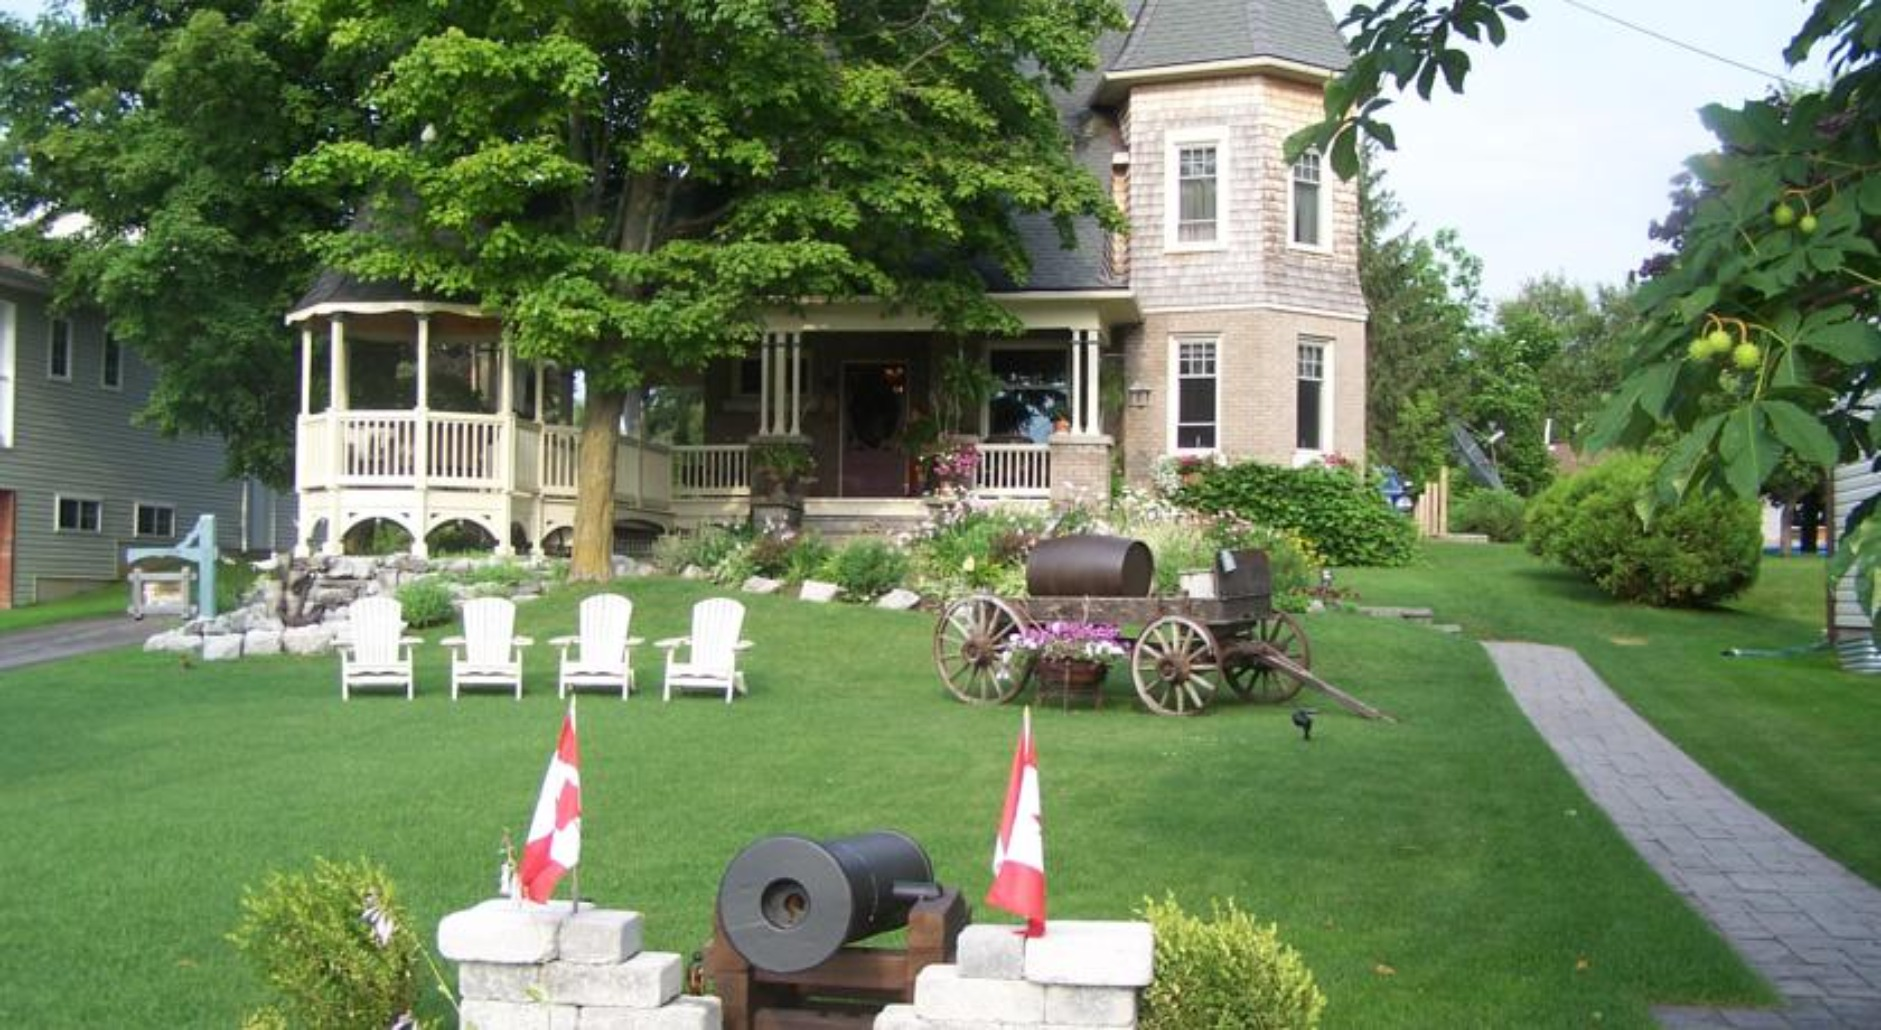 A large lawn in front of a house at Creighton Manor Inn Bed & Breakfast.